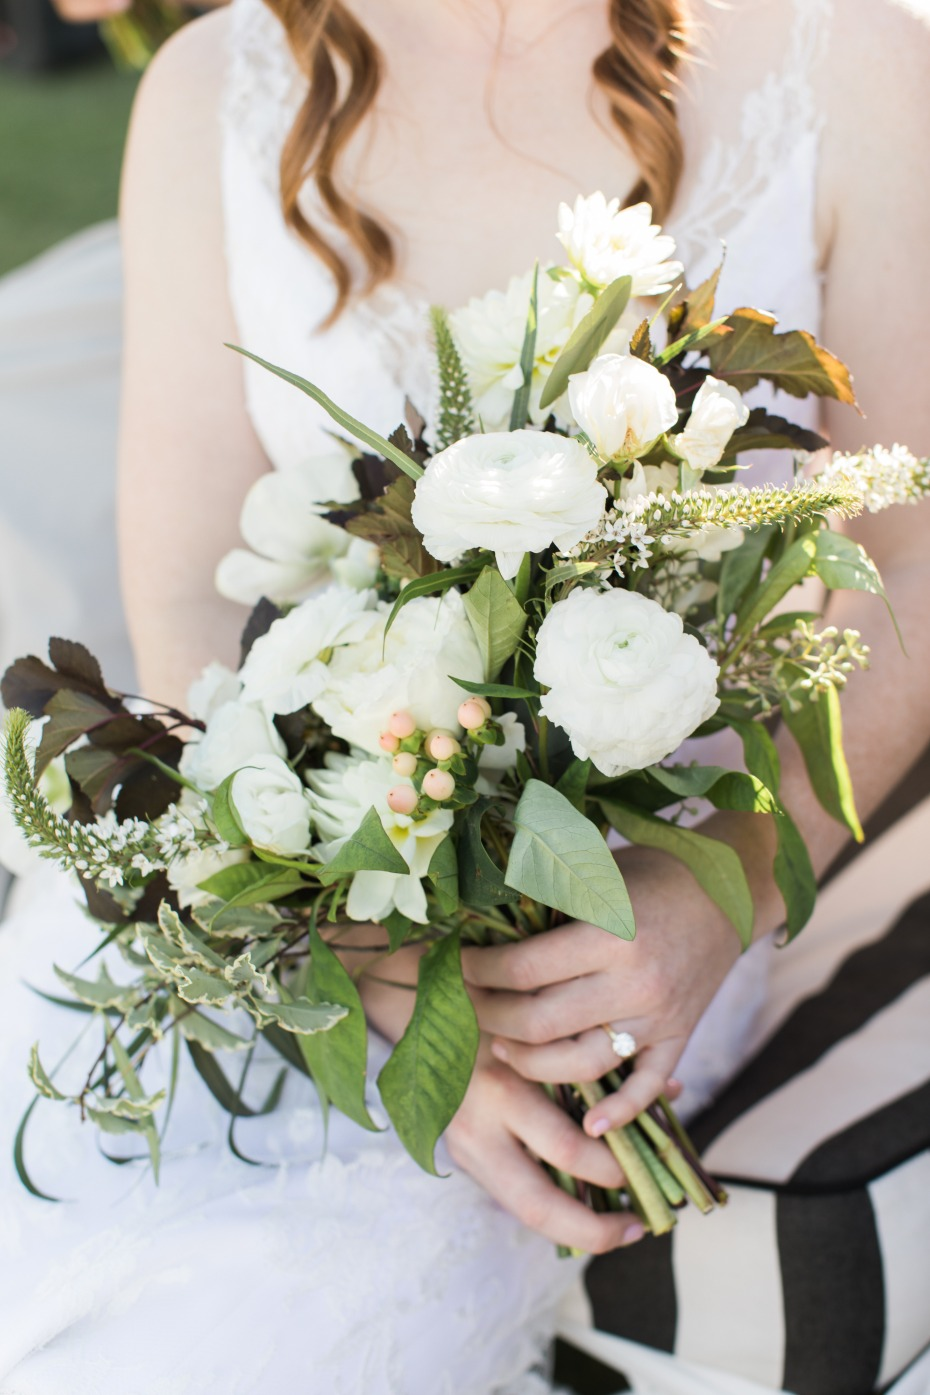 White and green bouquet from Stella Bloom Designs in LA